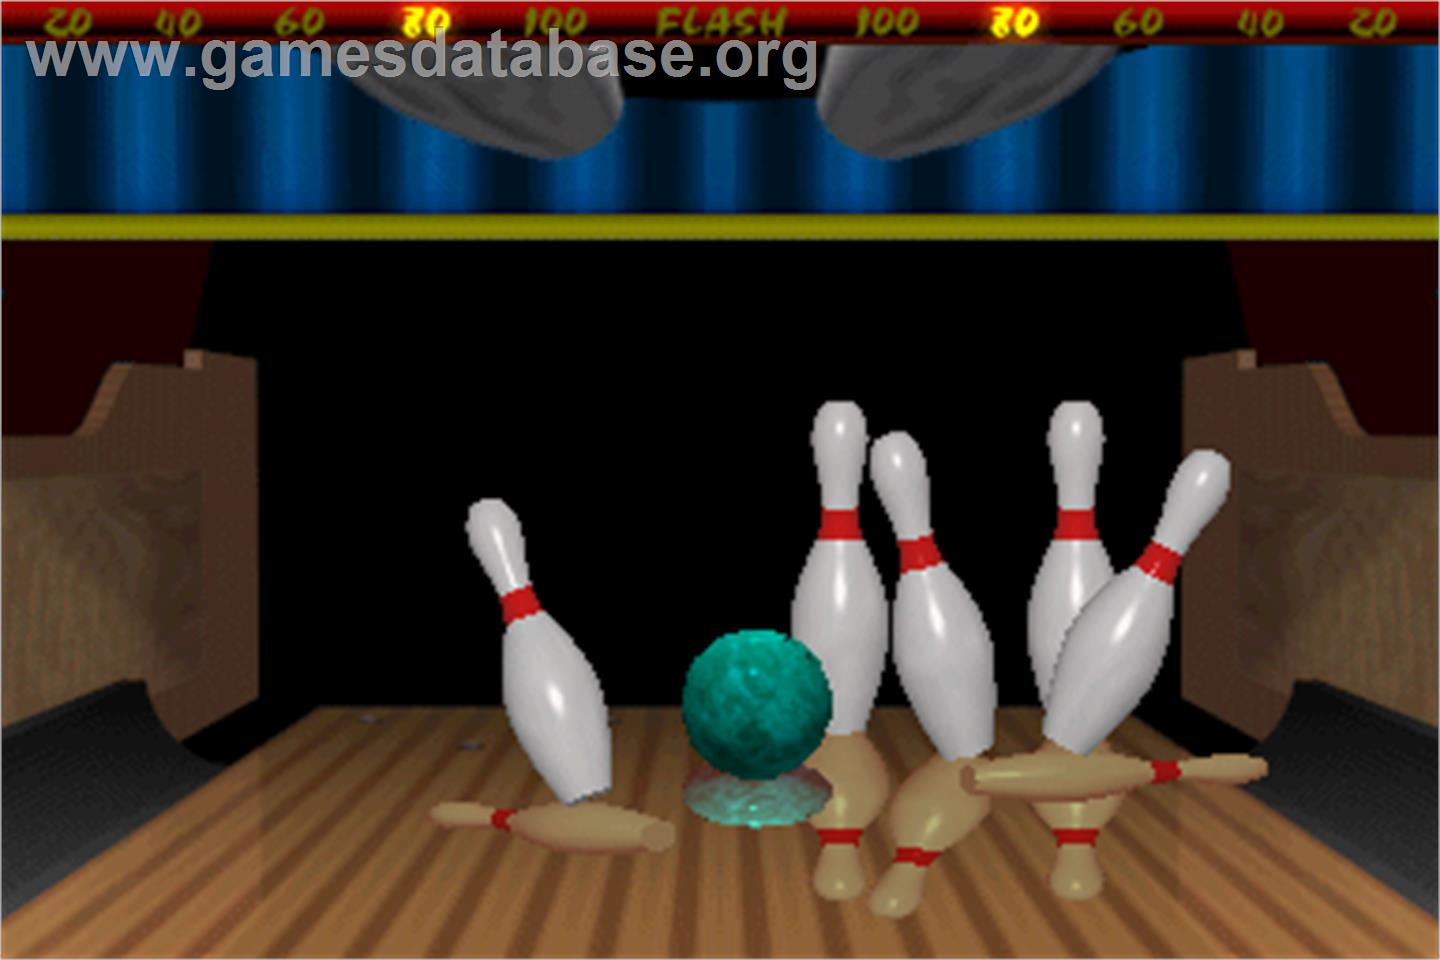 World Class Bowling Deluxe - Arcade - Artwork - In Game